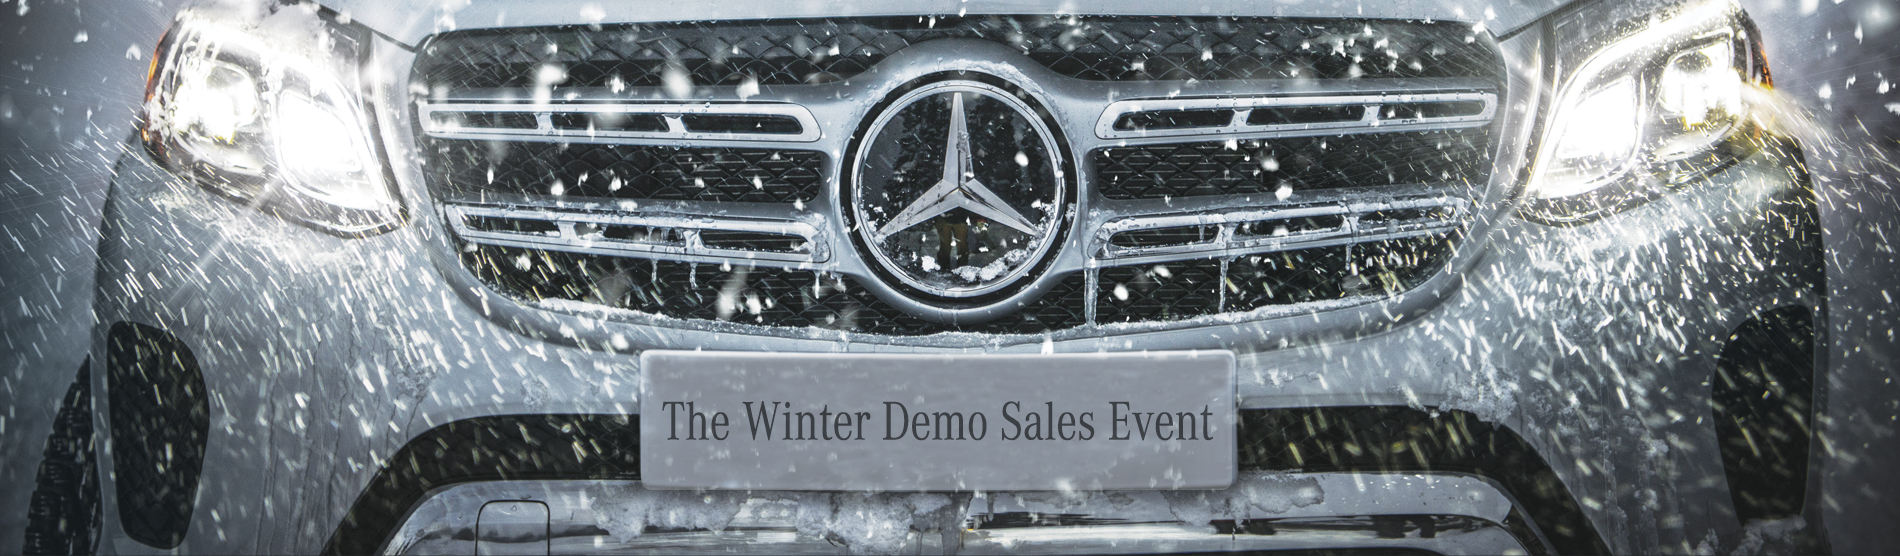 The MB London Demo Sales Event